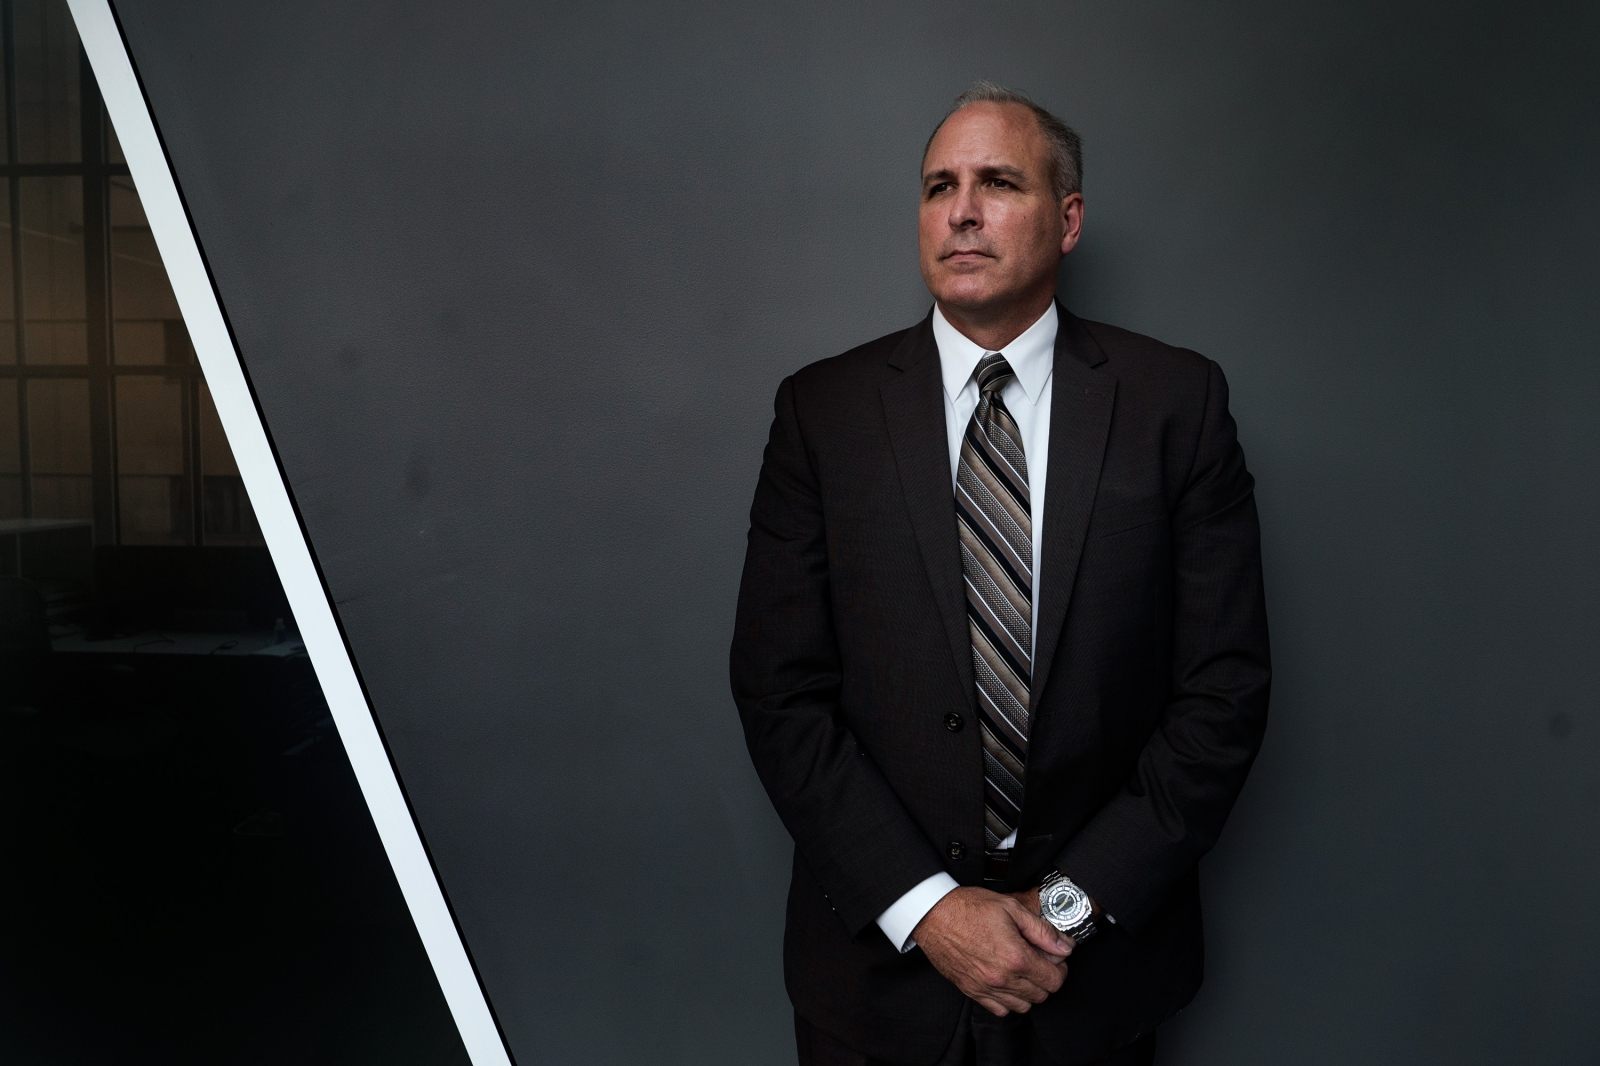 Mark Morgan, the Acting Chief of Customs and Border Protection, stands for a portrait.